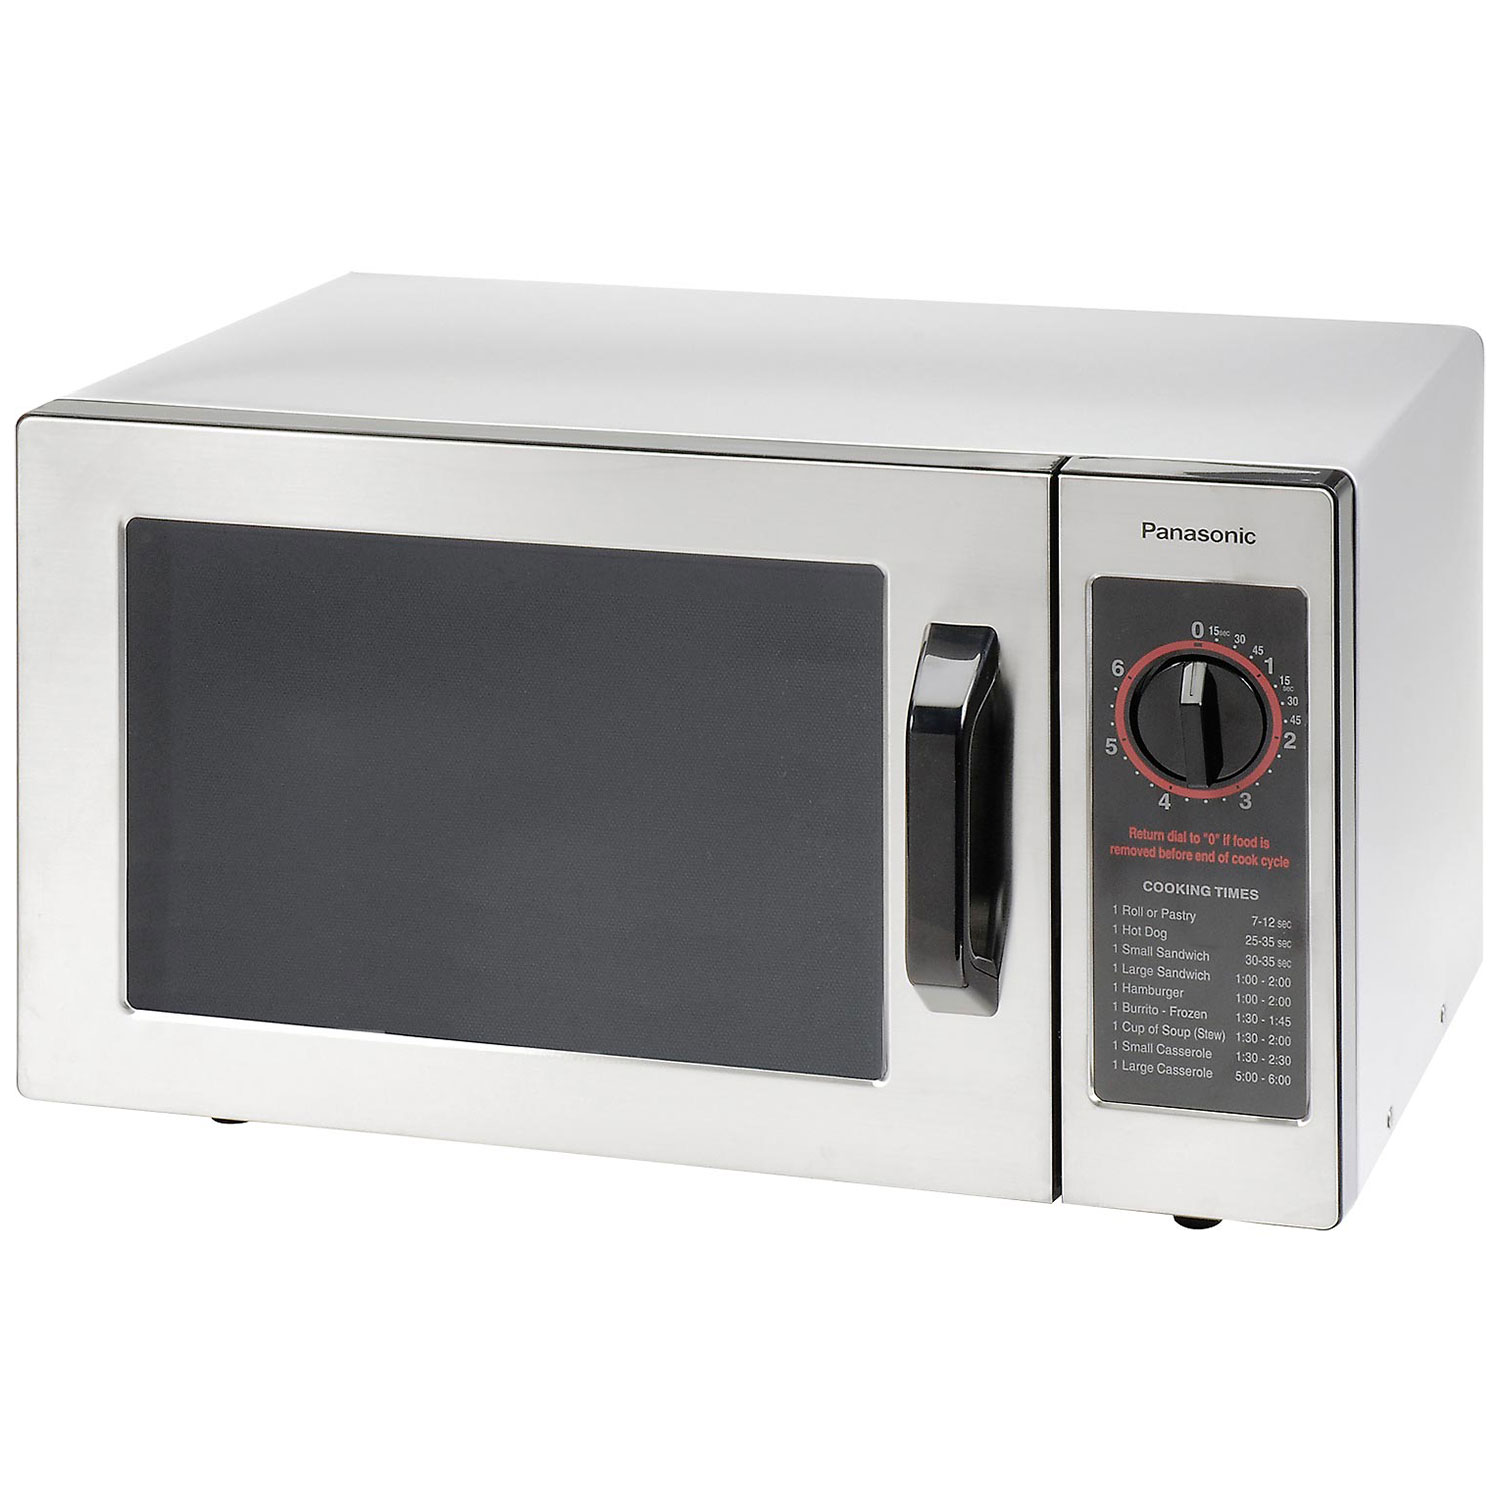 Panasonic NE-1025 - Microwave Oven,  0.8 Cu. Ft. 1000 Watt, Dial Control, Commercial Unit, Lot of 1